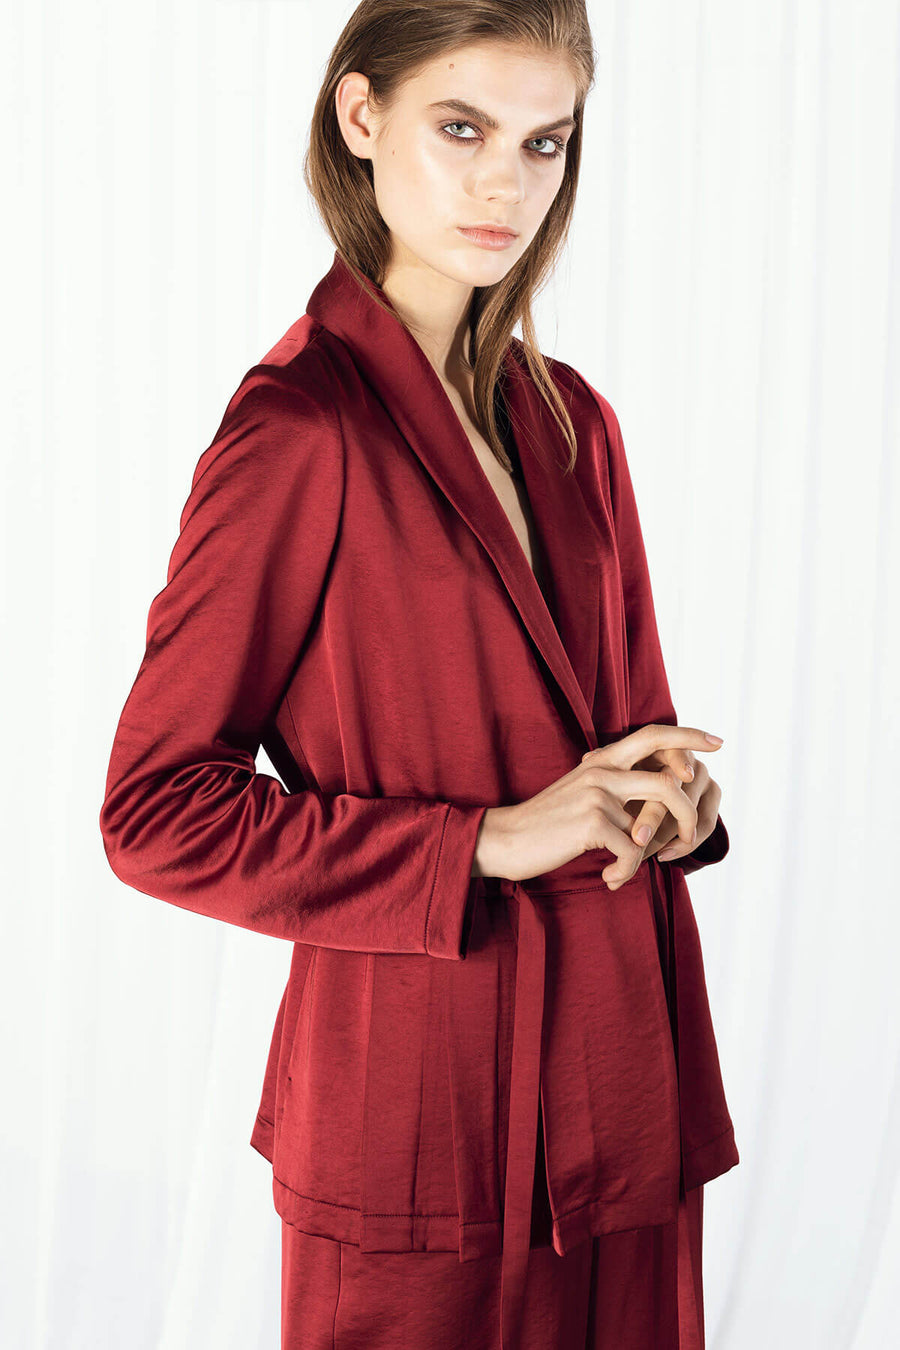 CURDIE Viscose Pleated Jacket - Burgundy